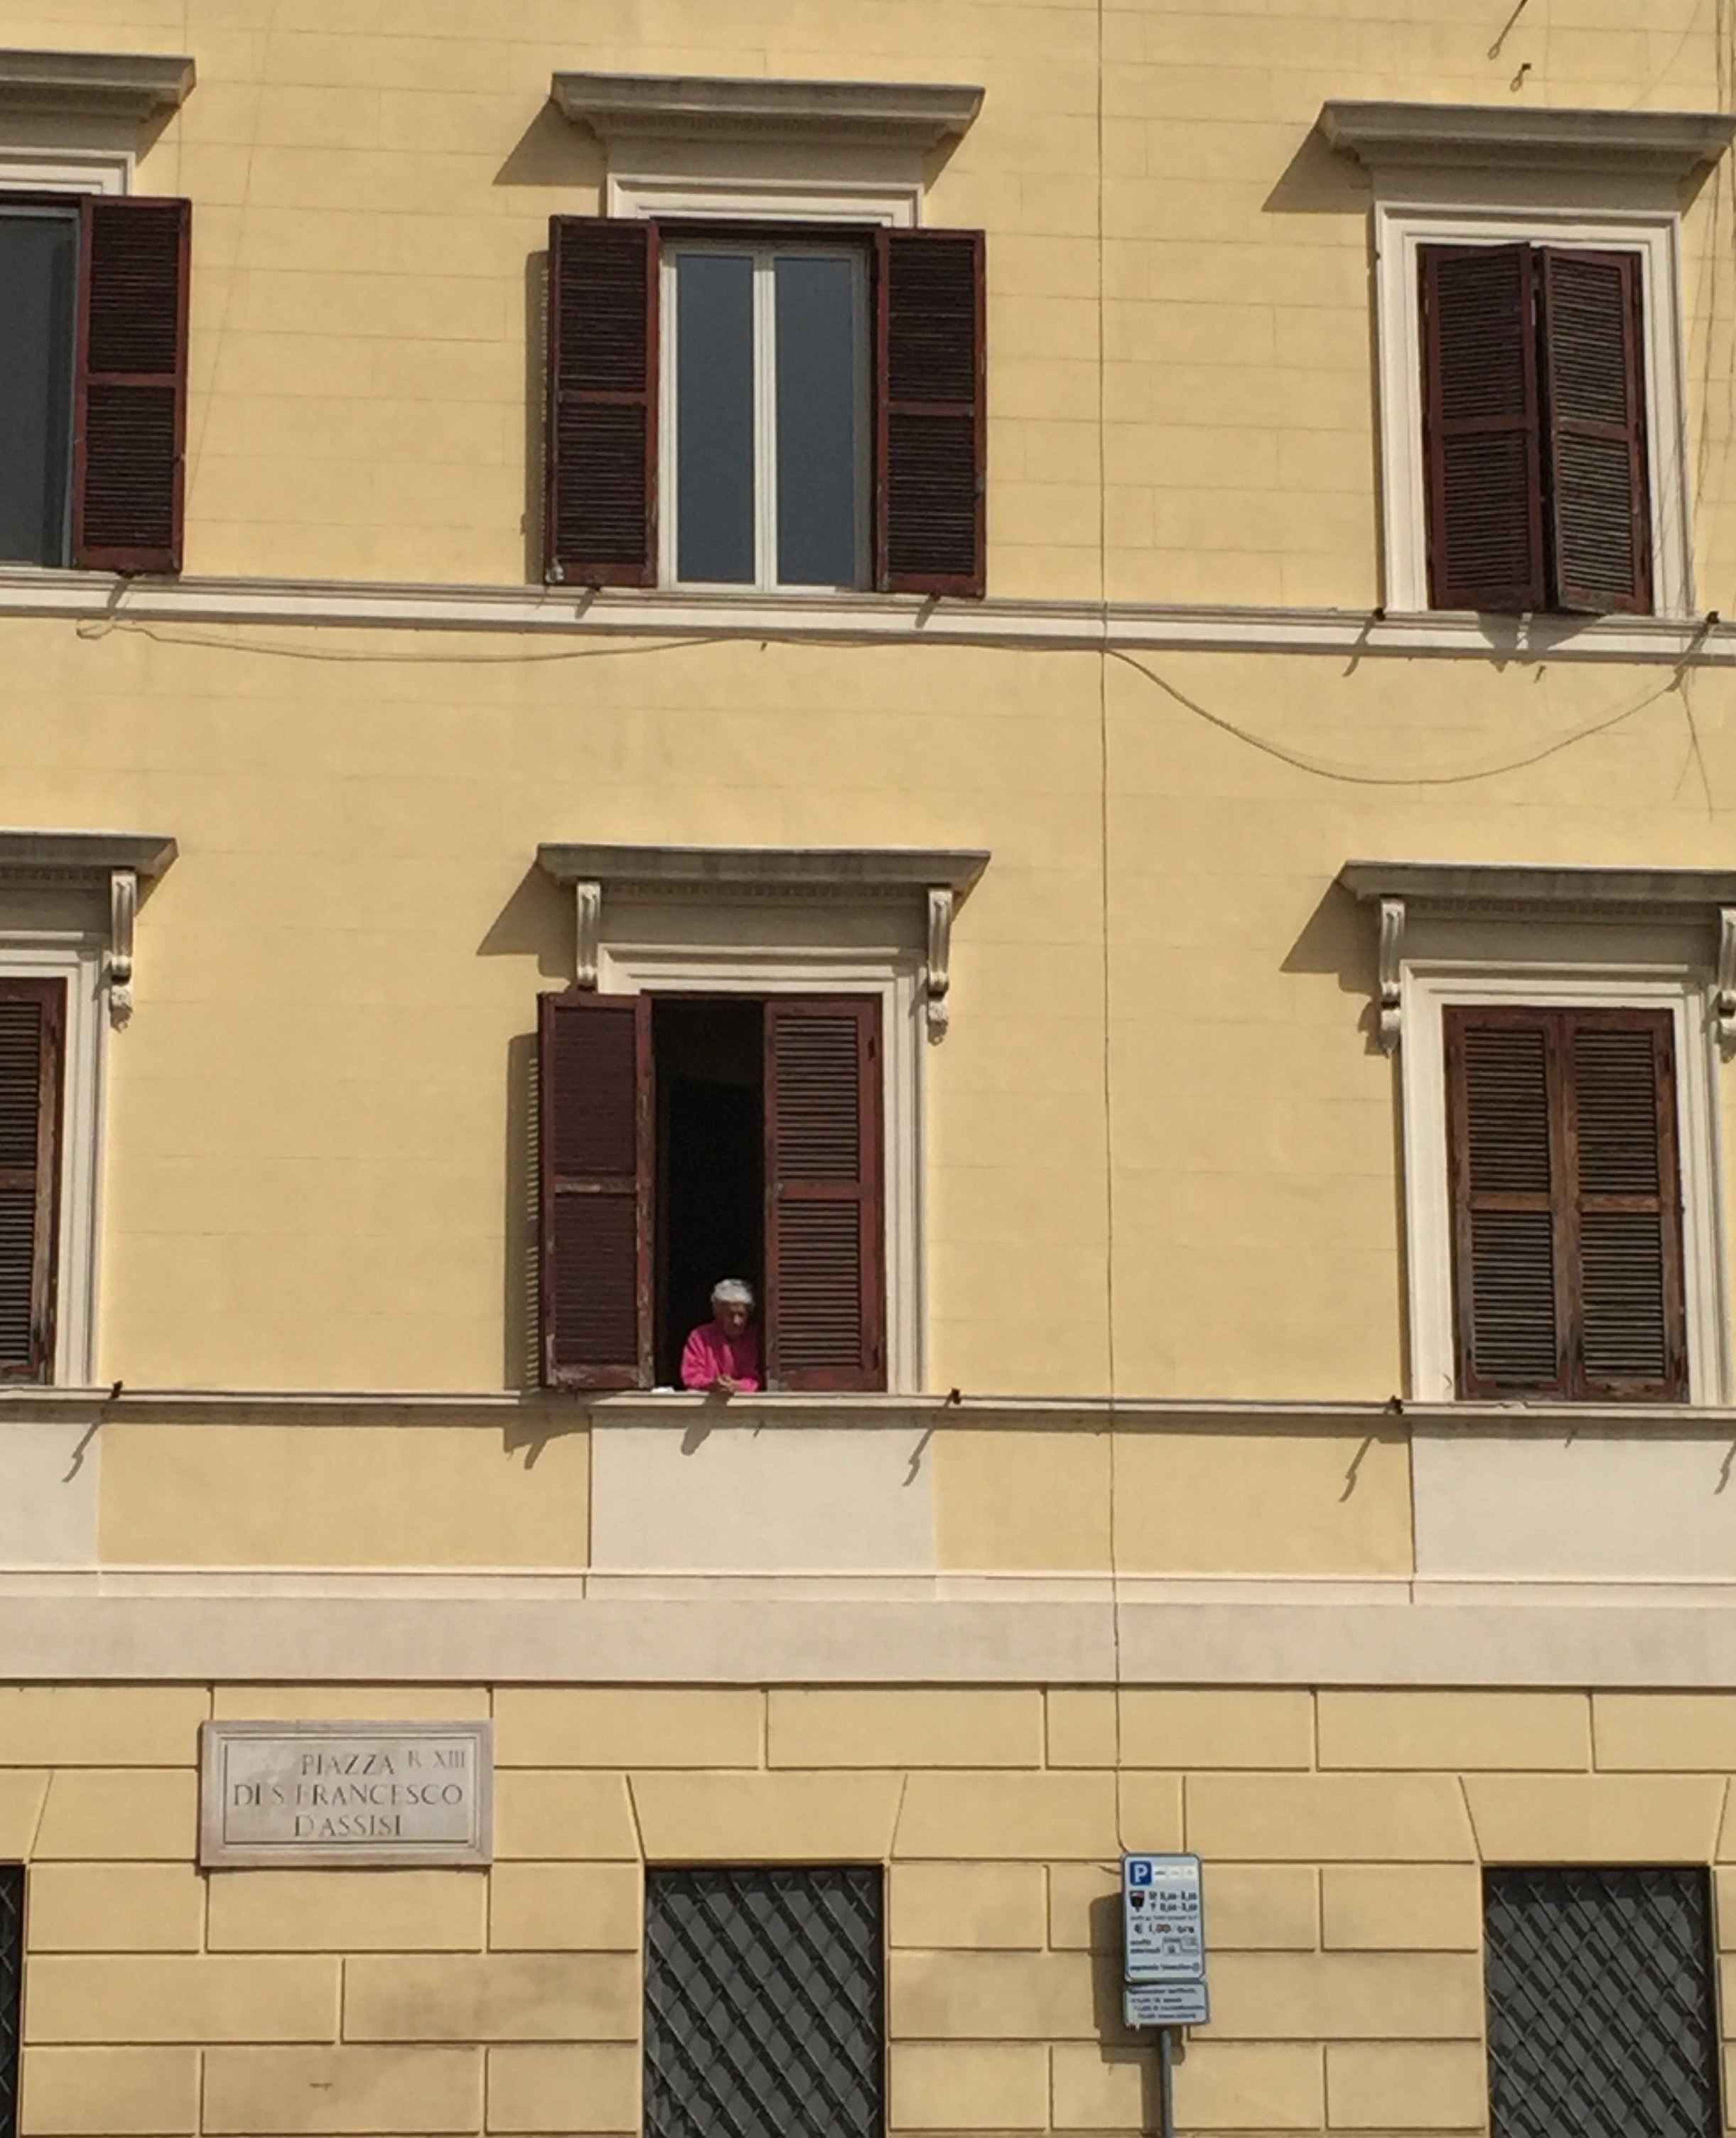 An elderly woman watches out over a Trastevere piazza. I love her pink shawl.